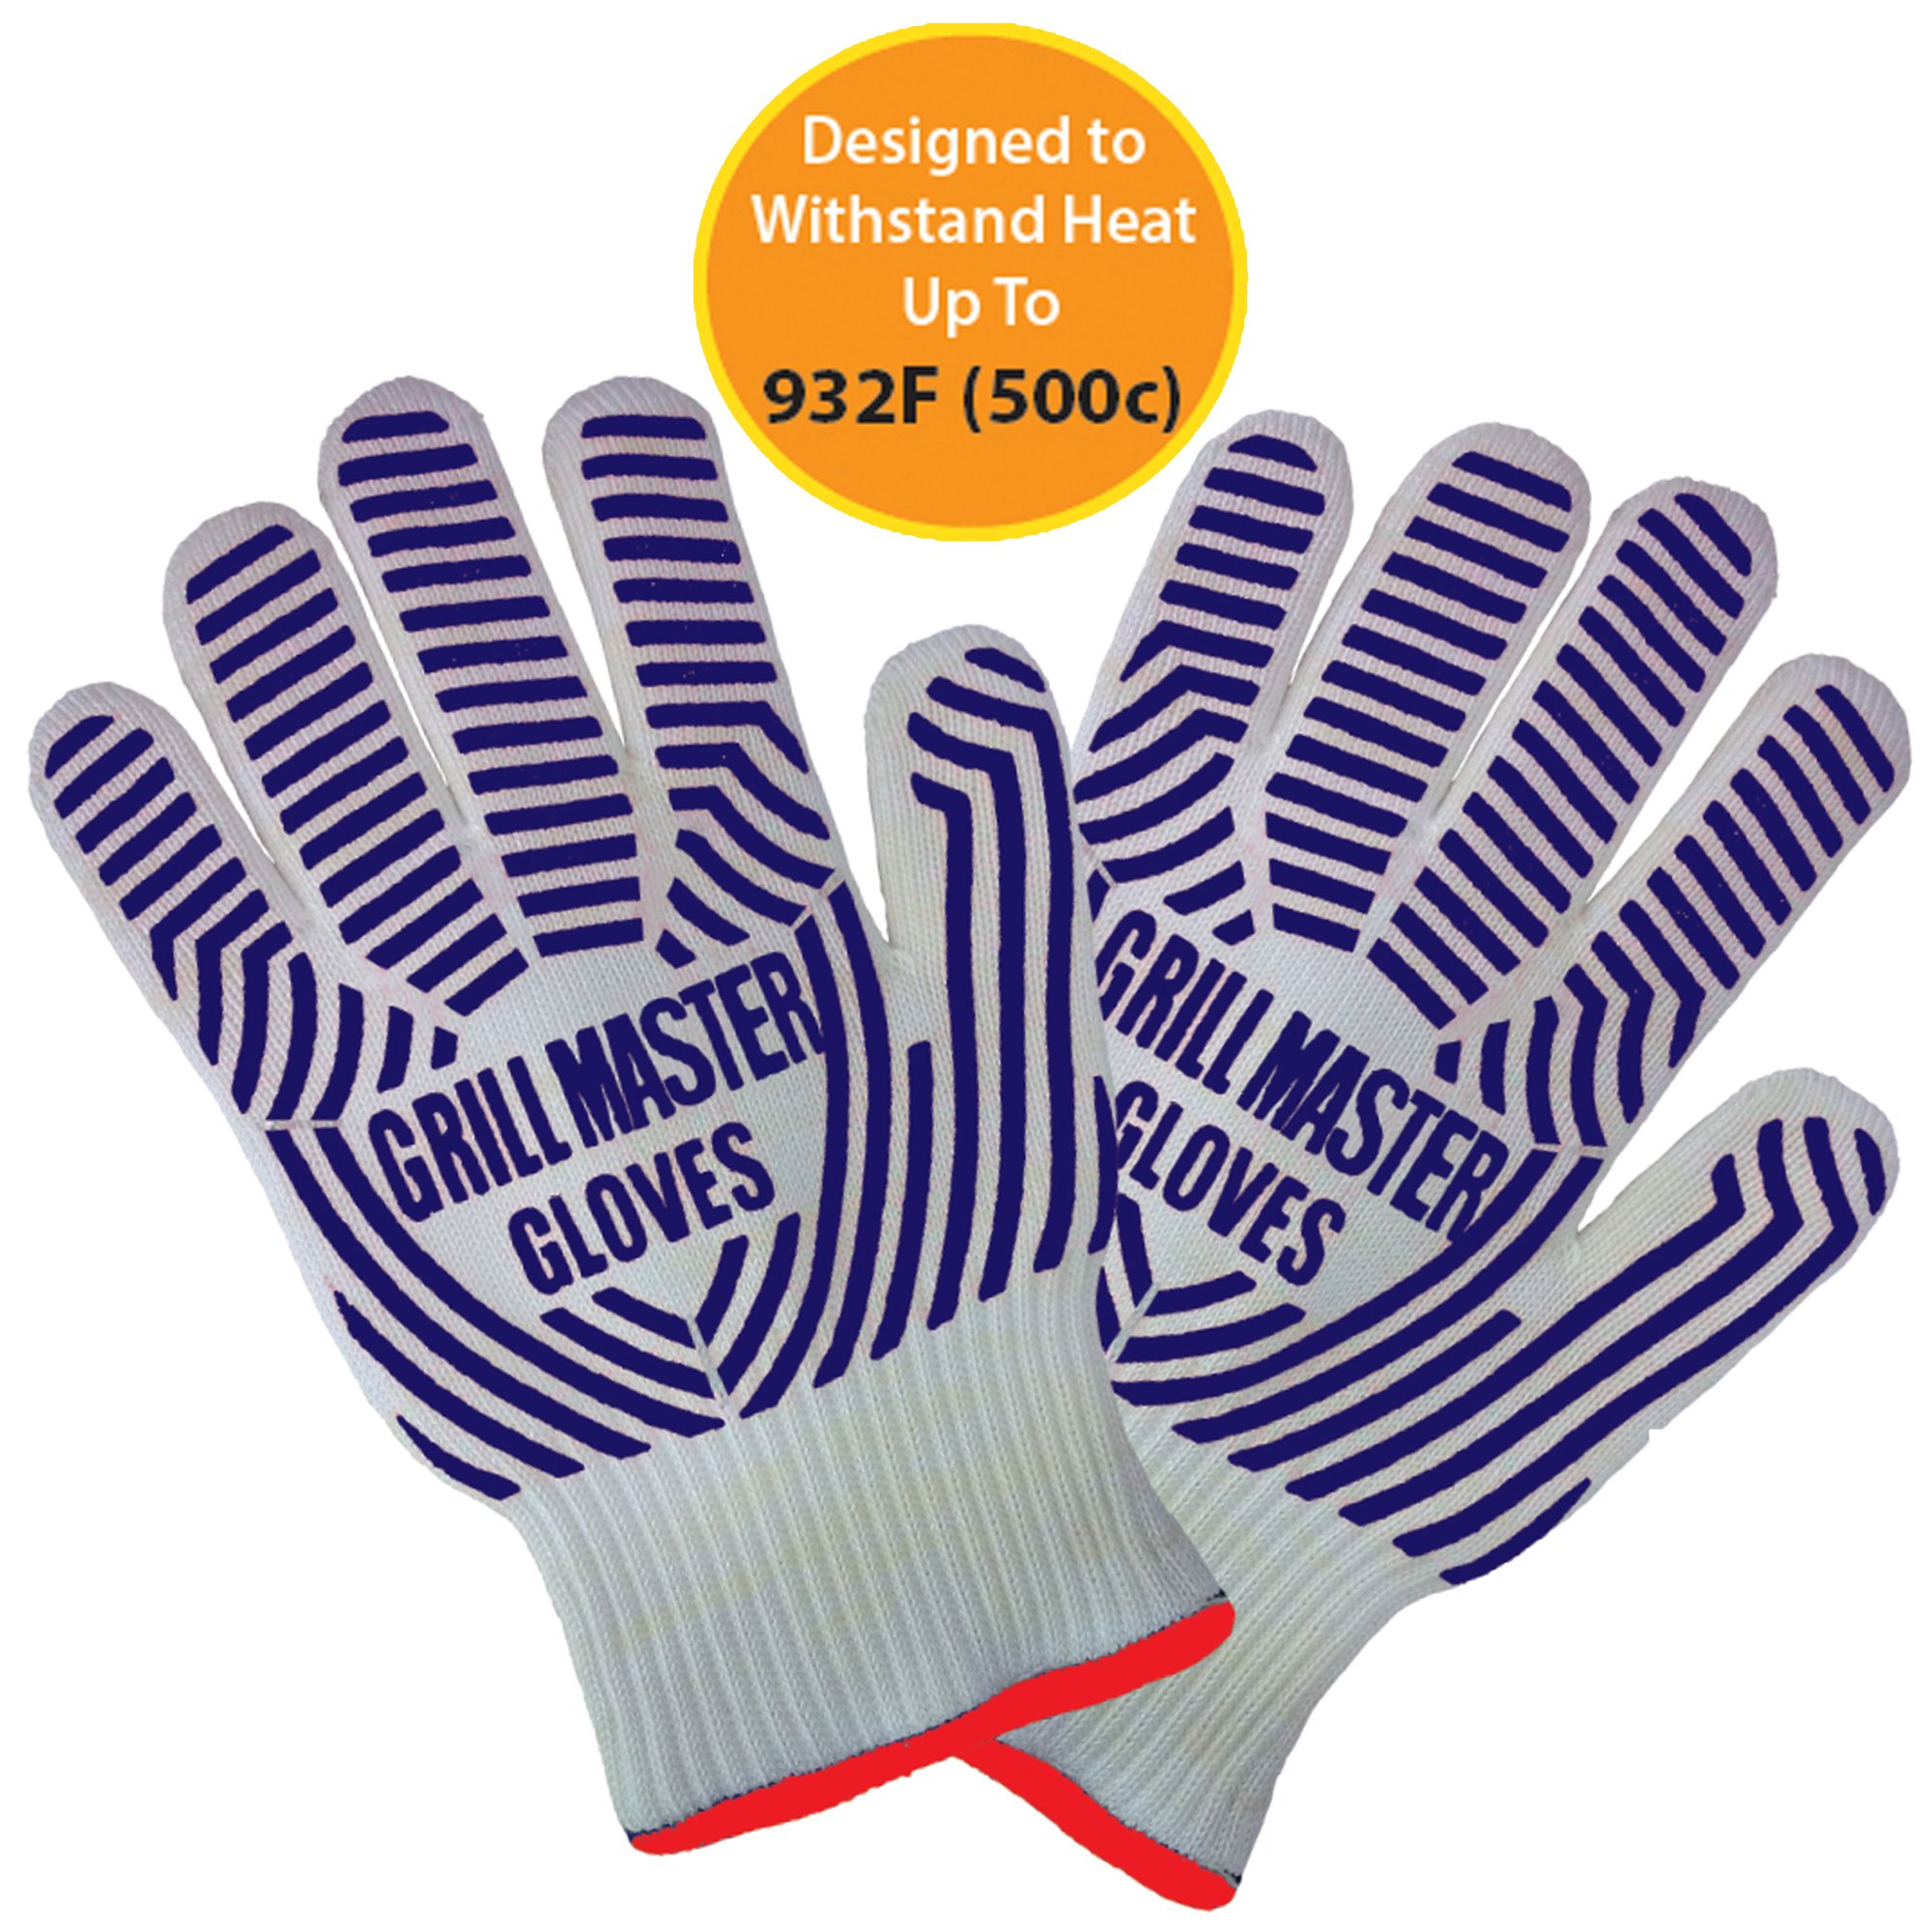 Grill Gloves Heat Resistant Extreme BBQ Gloves Oven Gloves Rated to 932f - Ideal Grilling Gloves by Grill Master (Black)